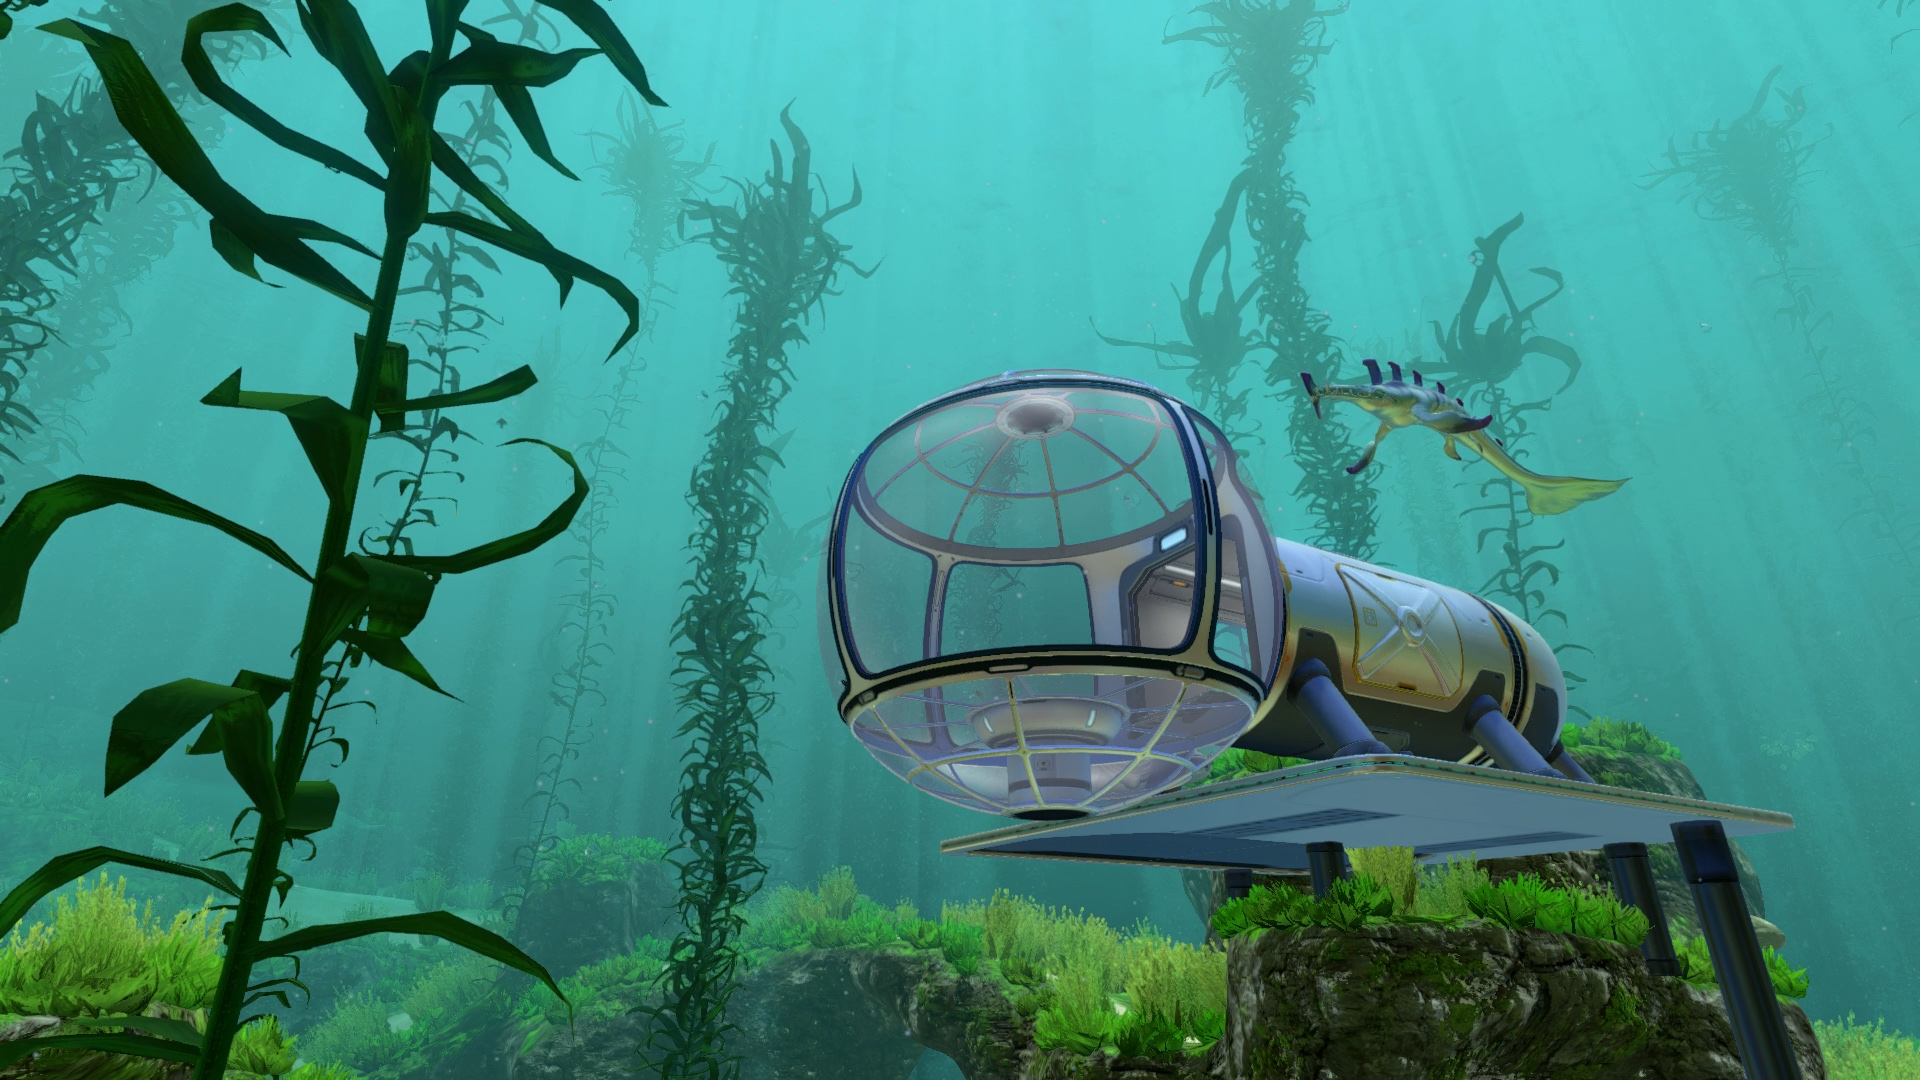 subnautica on steam with